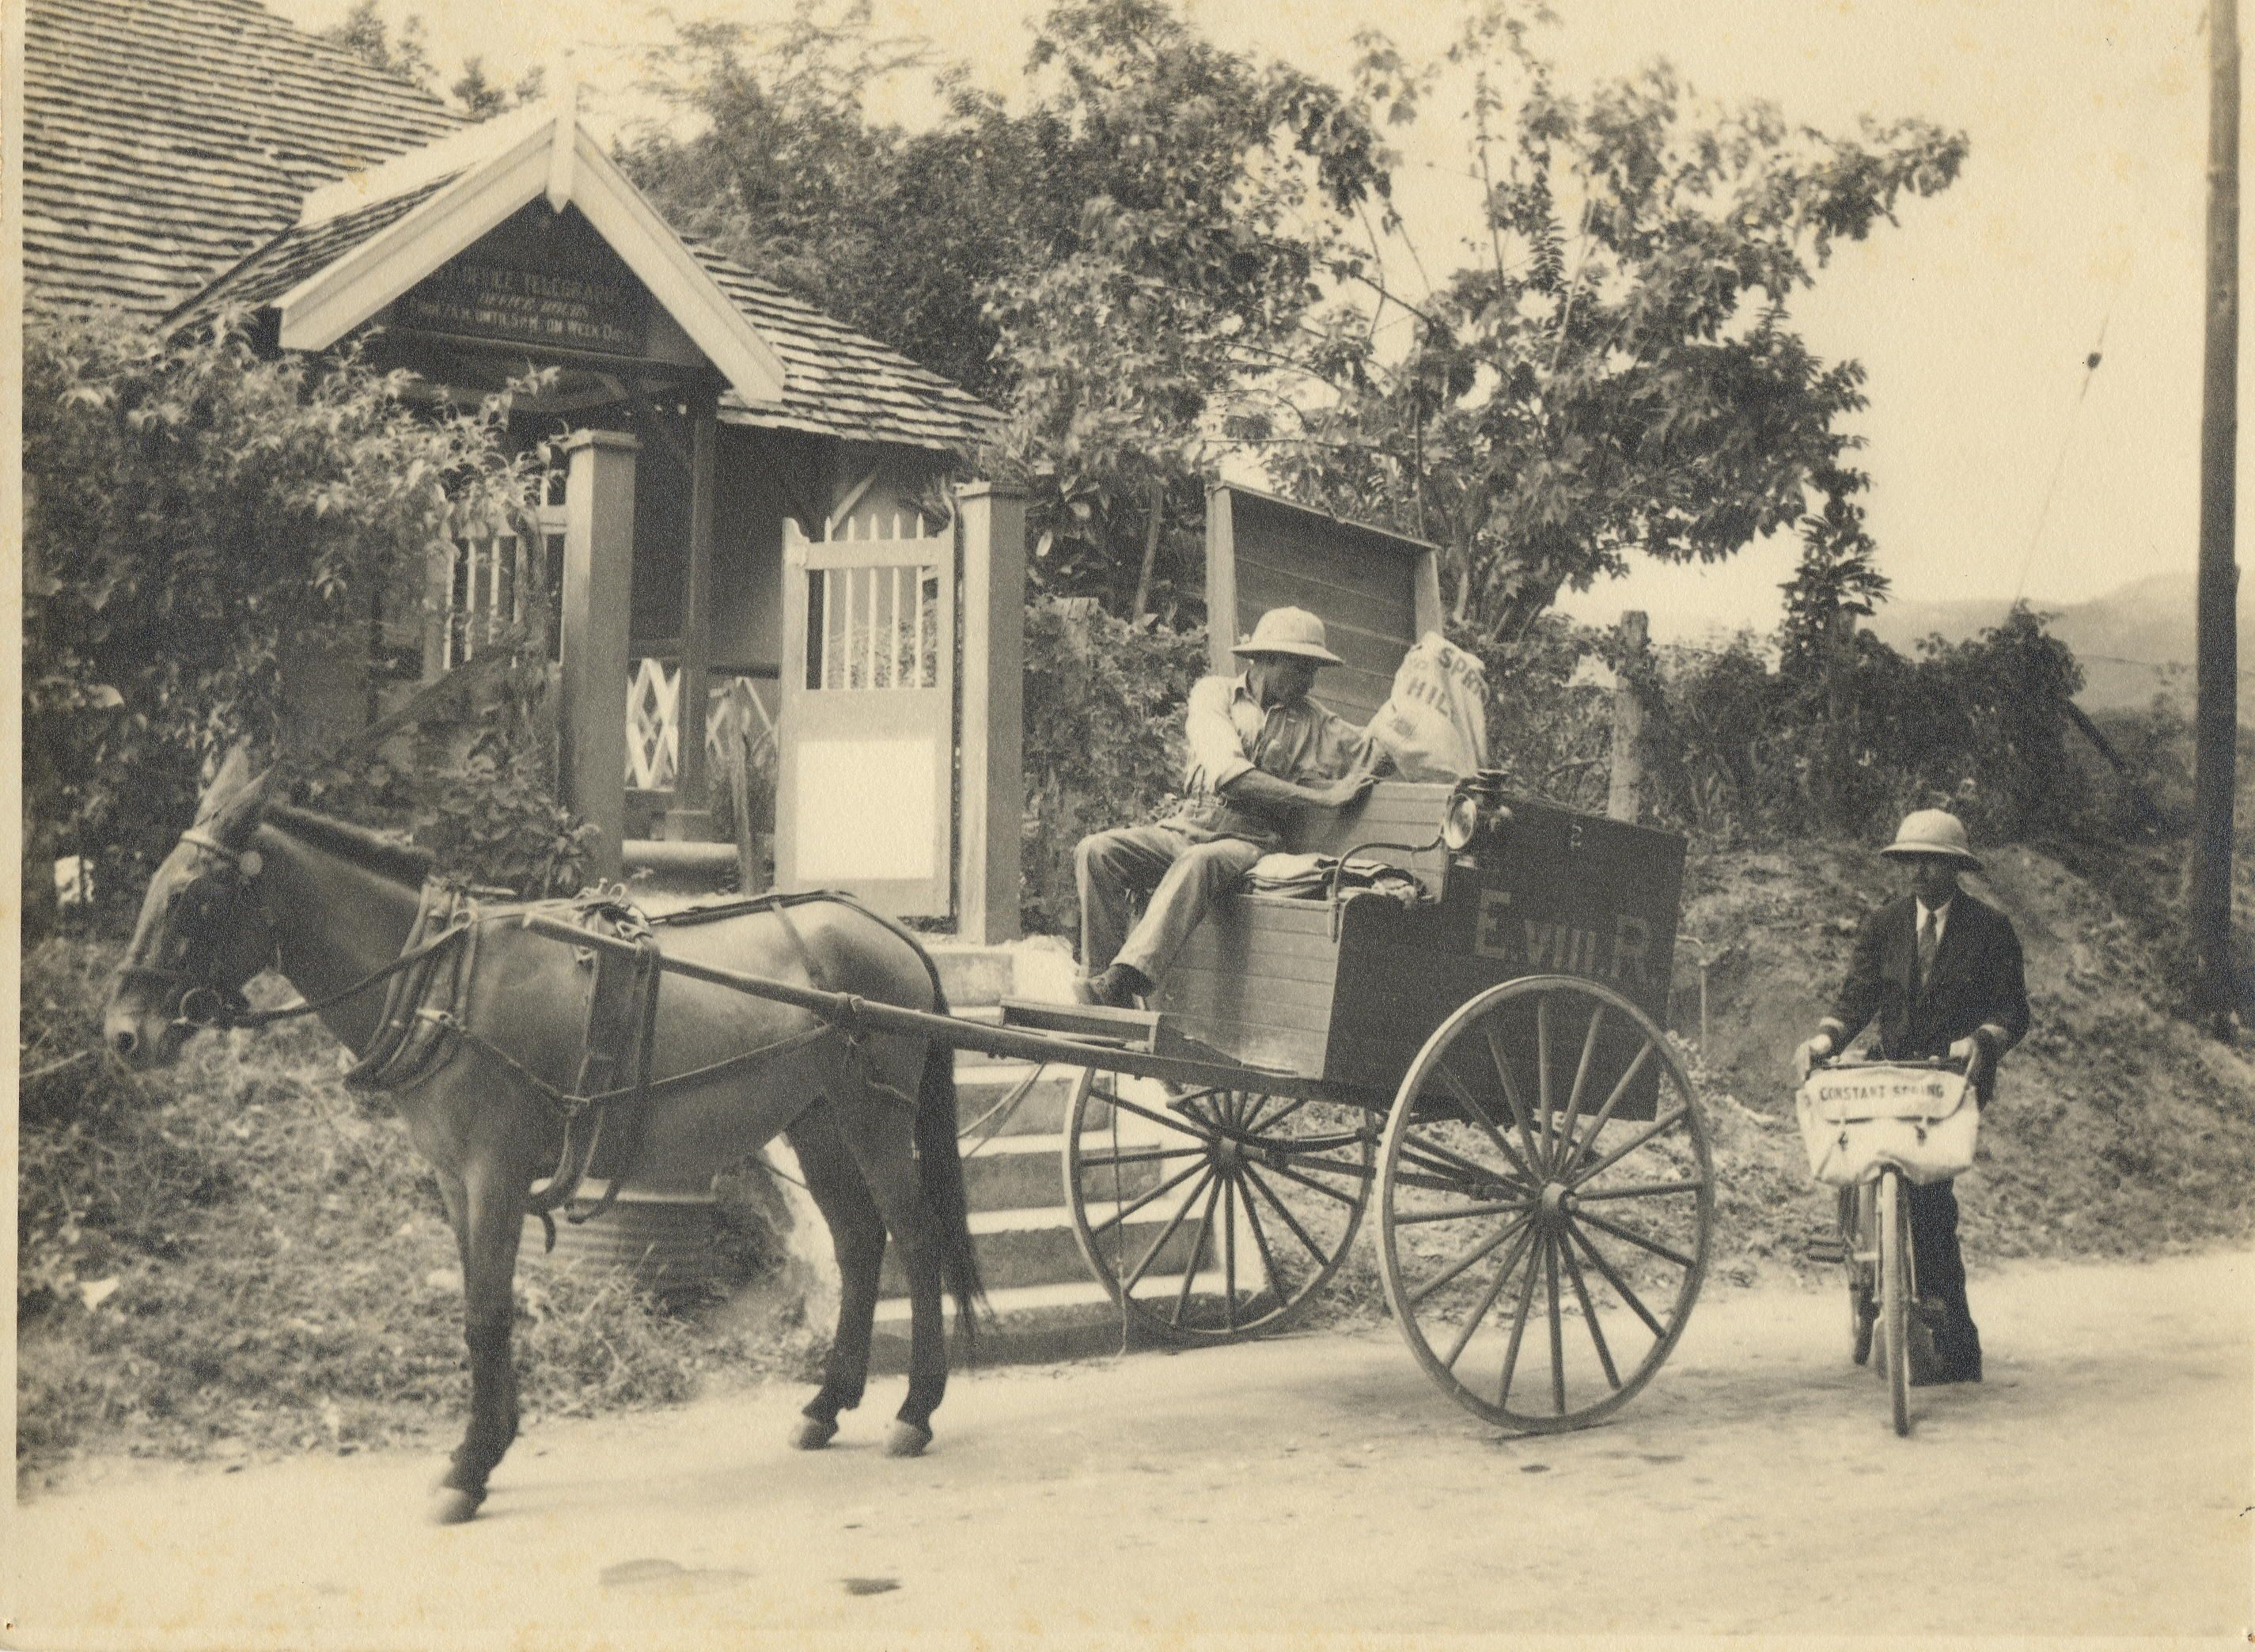 Old Photograph Of Jamaican Post Office And Mailmen From